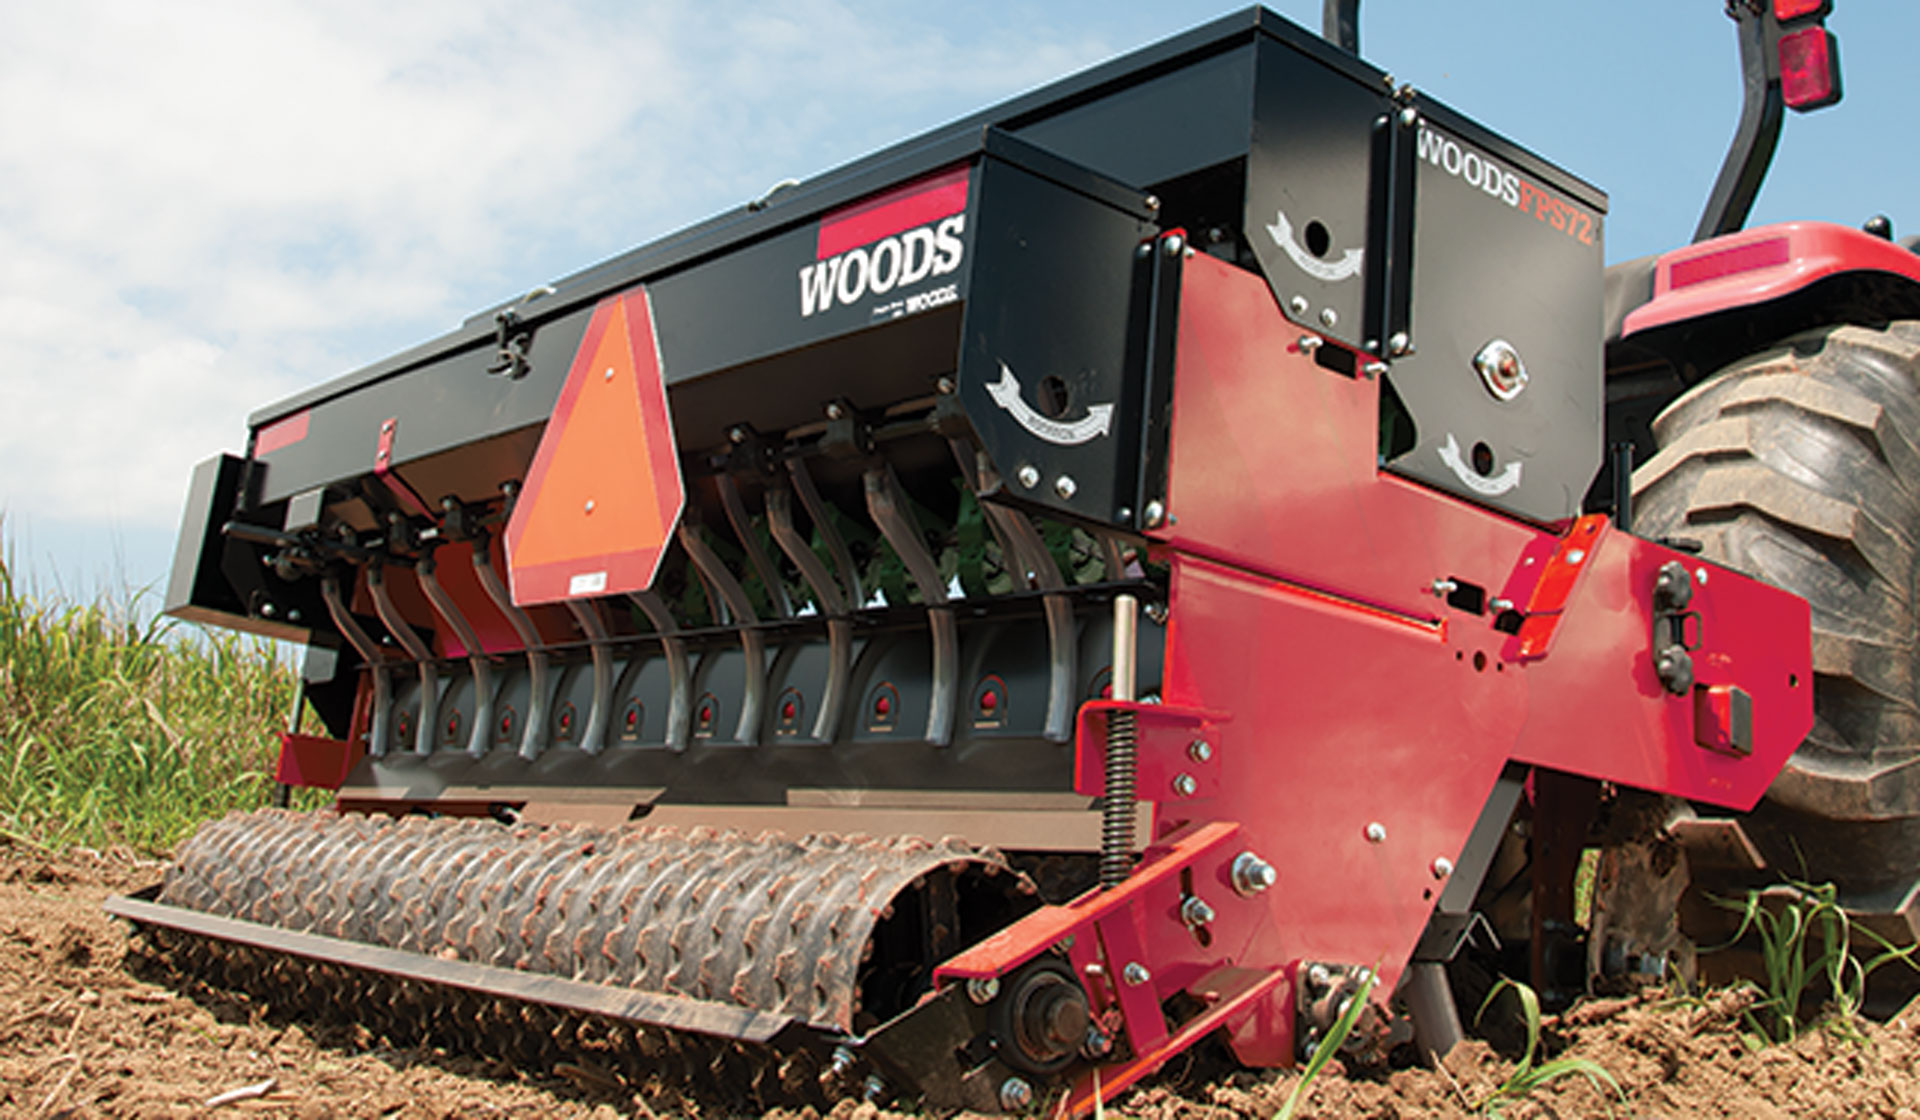 The Woods Precision Super Seeder can help with seed-to-soil contact.